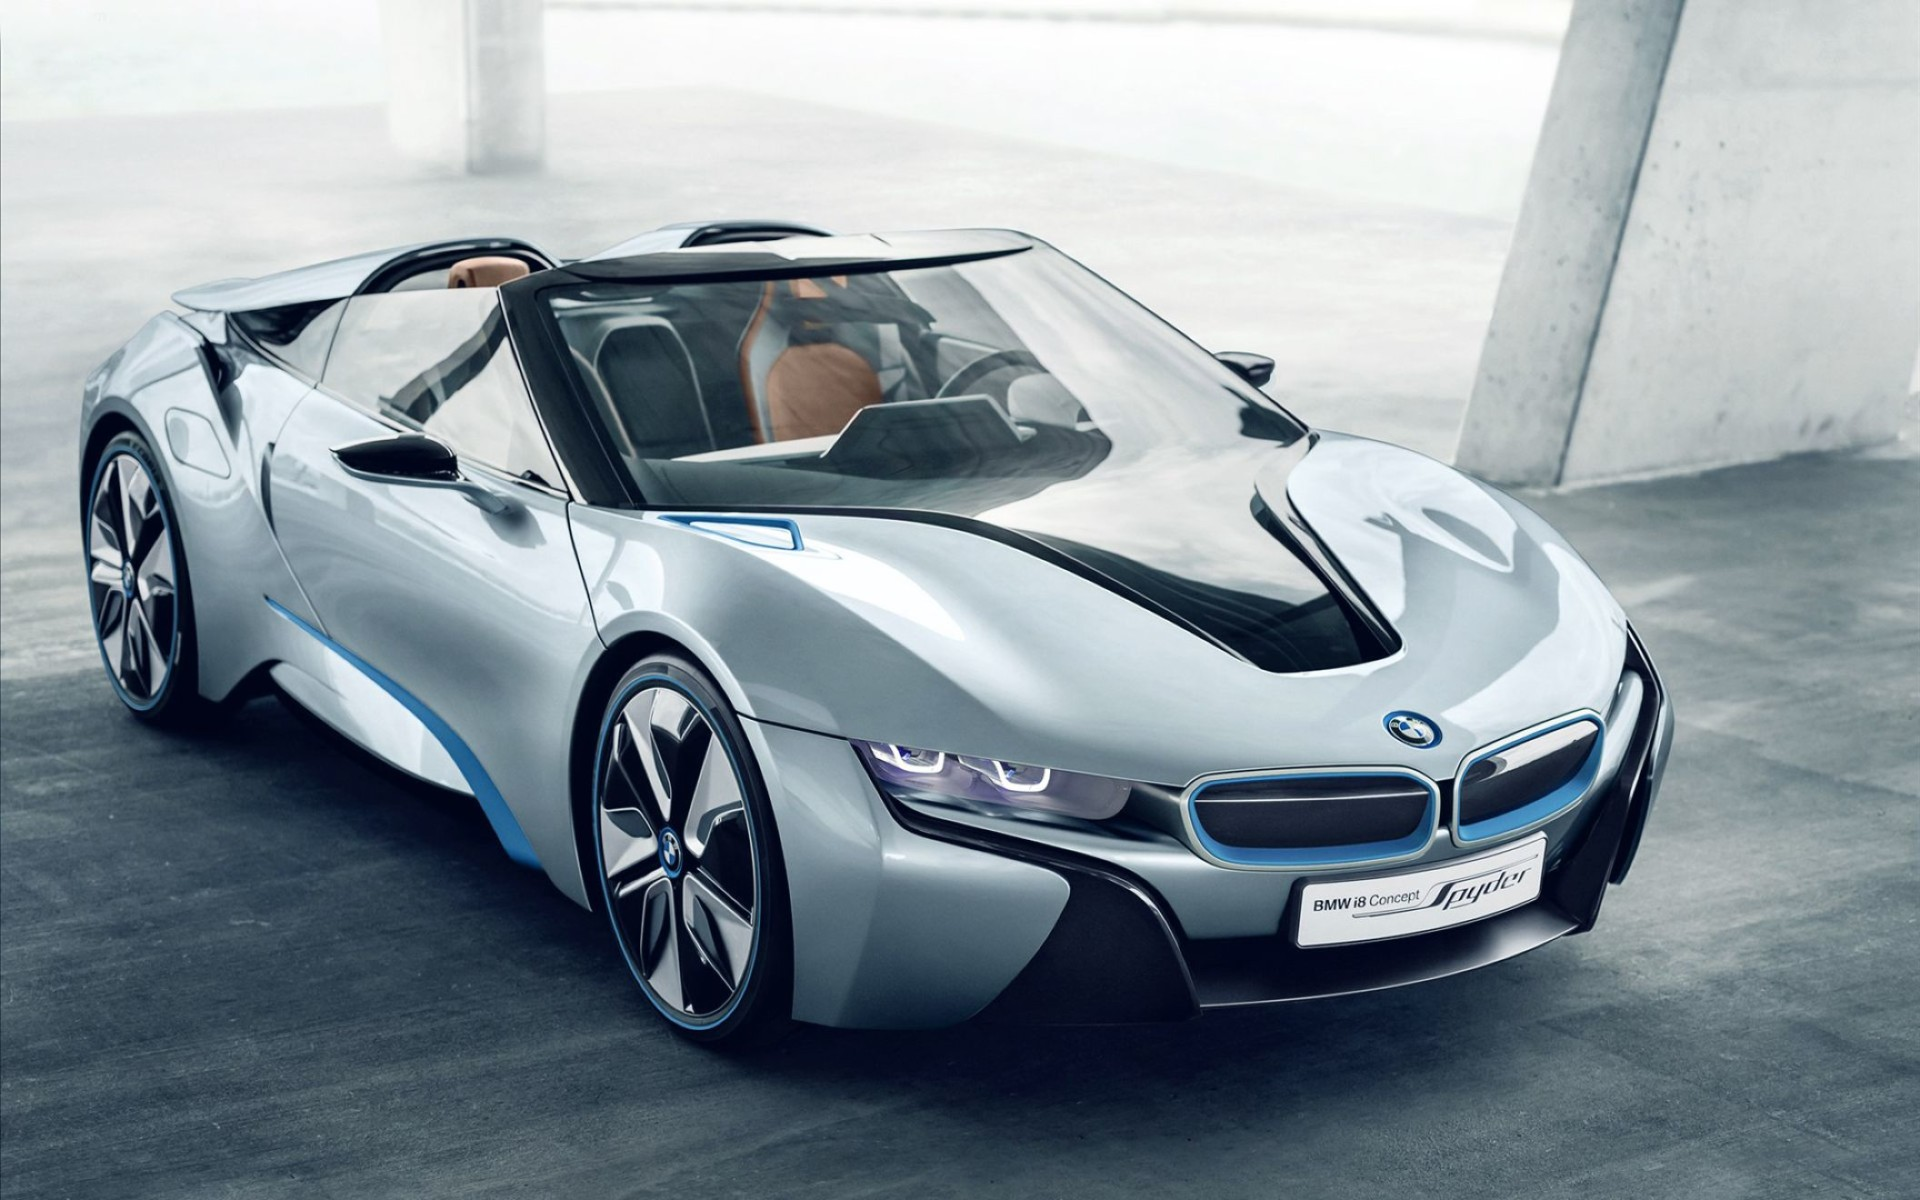 BMW I8 Spyder Concept Car Wide Wallpaper